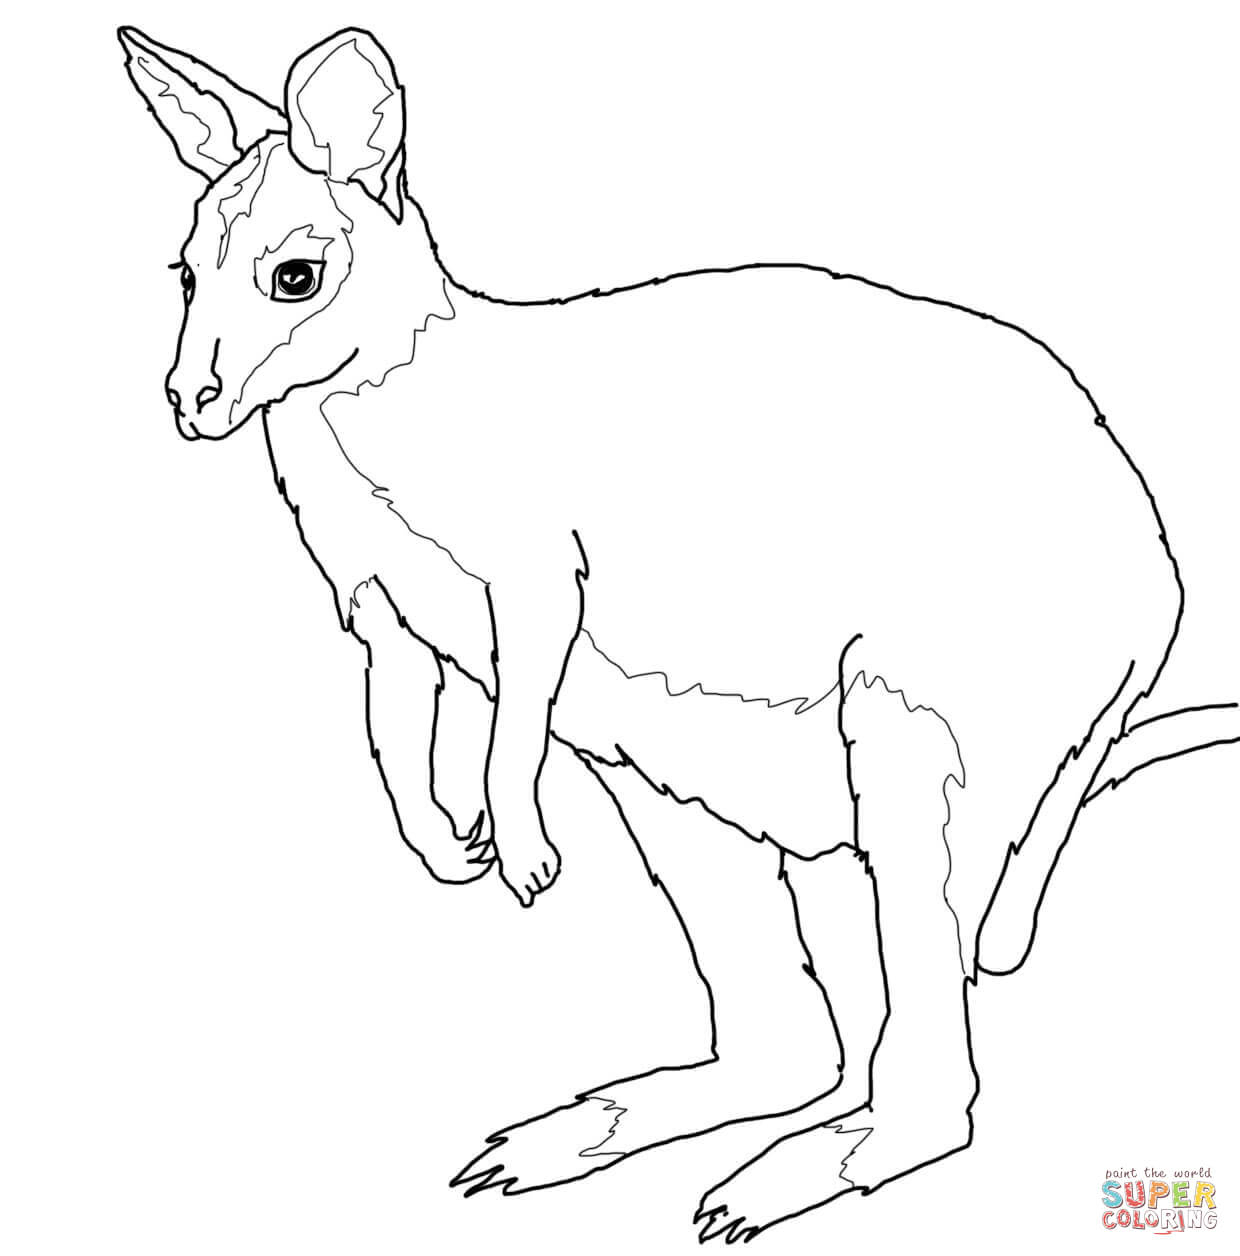 Australian Animals Coloring Pages   Free Printable Pictures - Free Printable Pictures Of Australian Animals